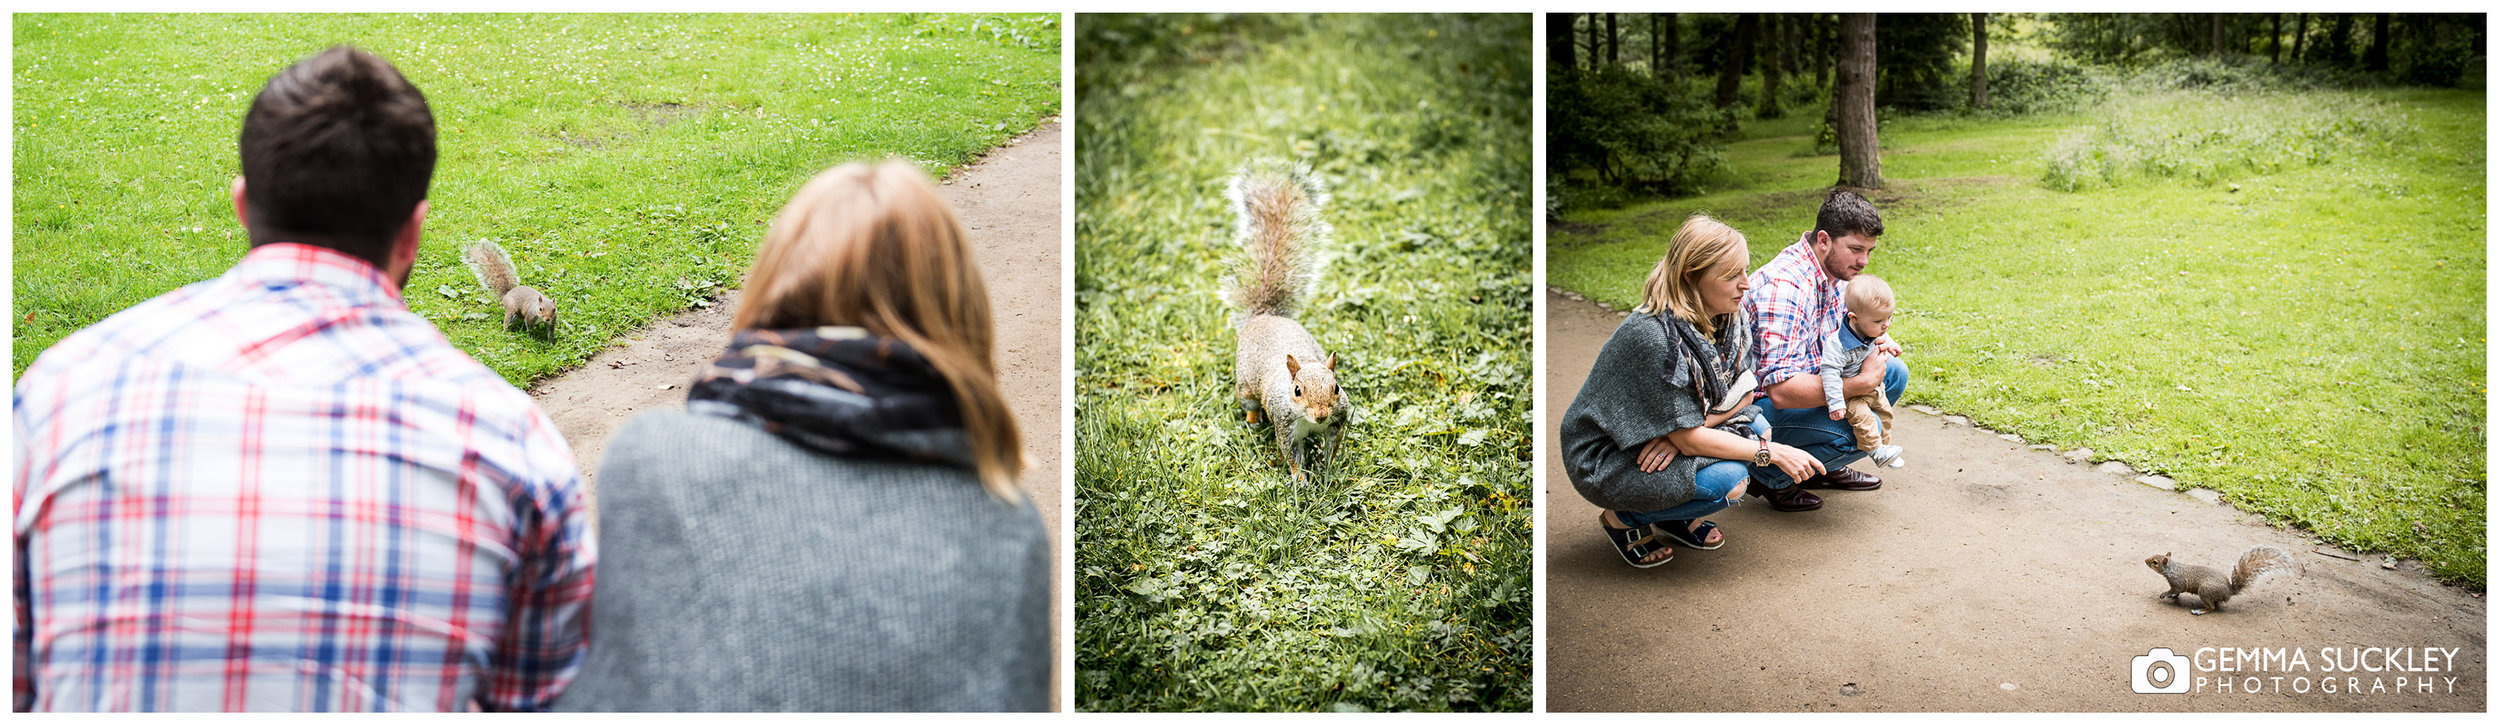 Couple and baby find the squirrels at Golden Are Park in Leeds